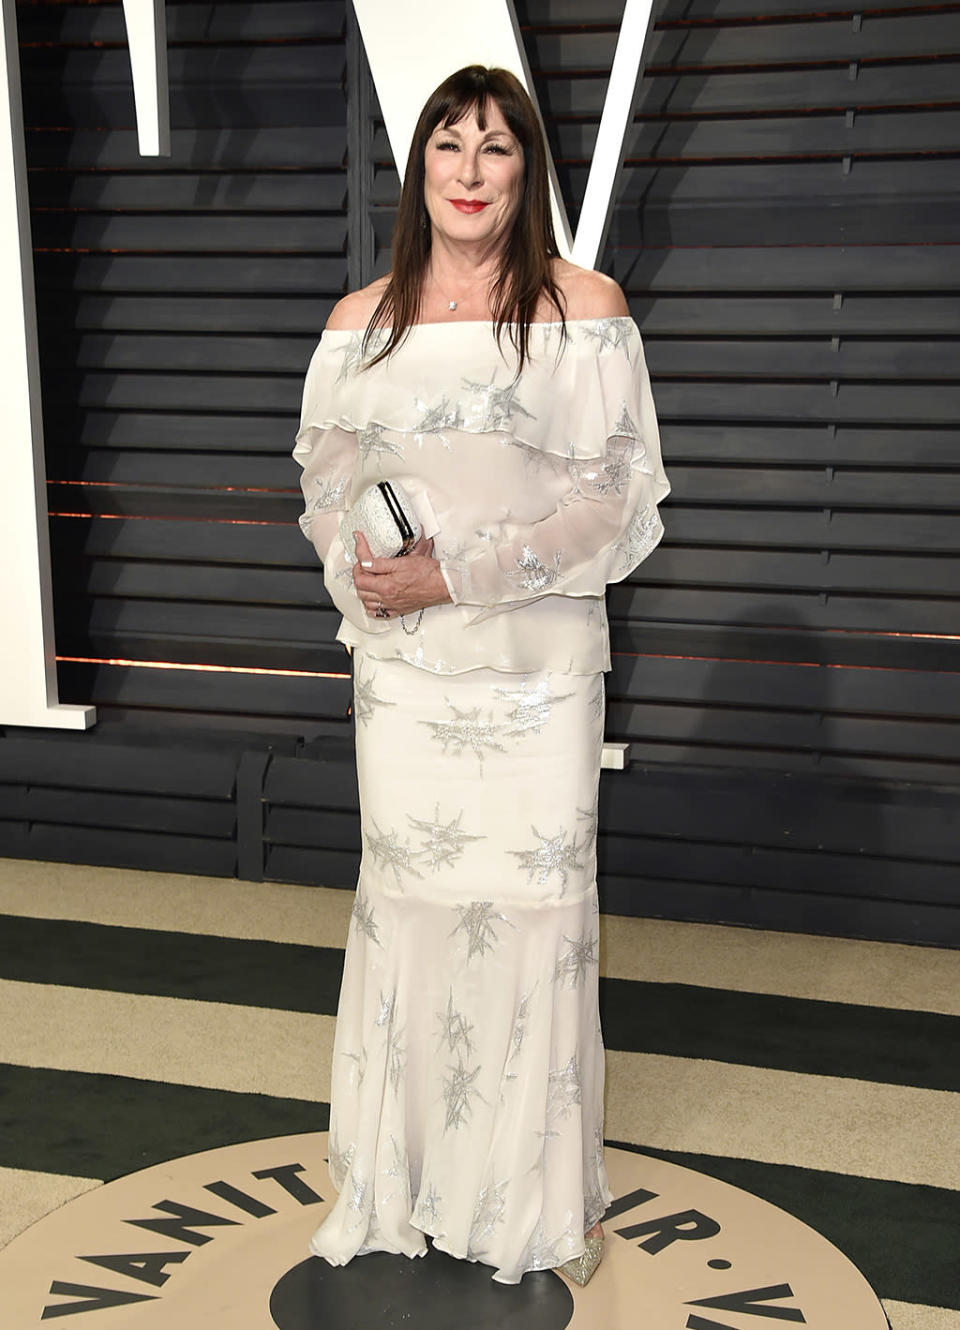 <p>Anjelica Huston arrives at the Vanity Fair Oscar Party on Sunday, Feb. 26, 2017, in Beverly Hills, Calif. (Photo by Evan Agostini/Invision/AP) </p>